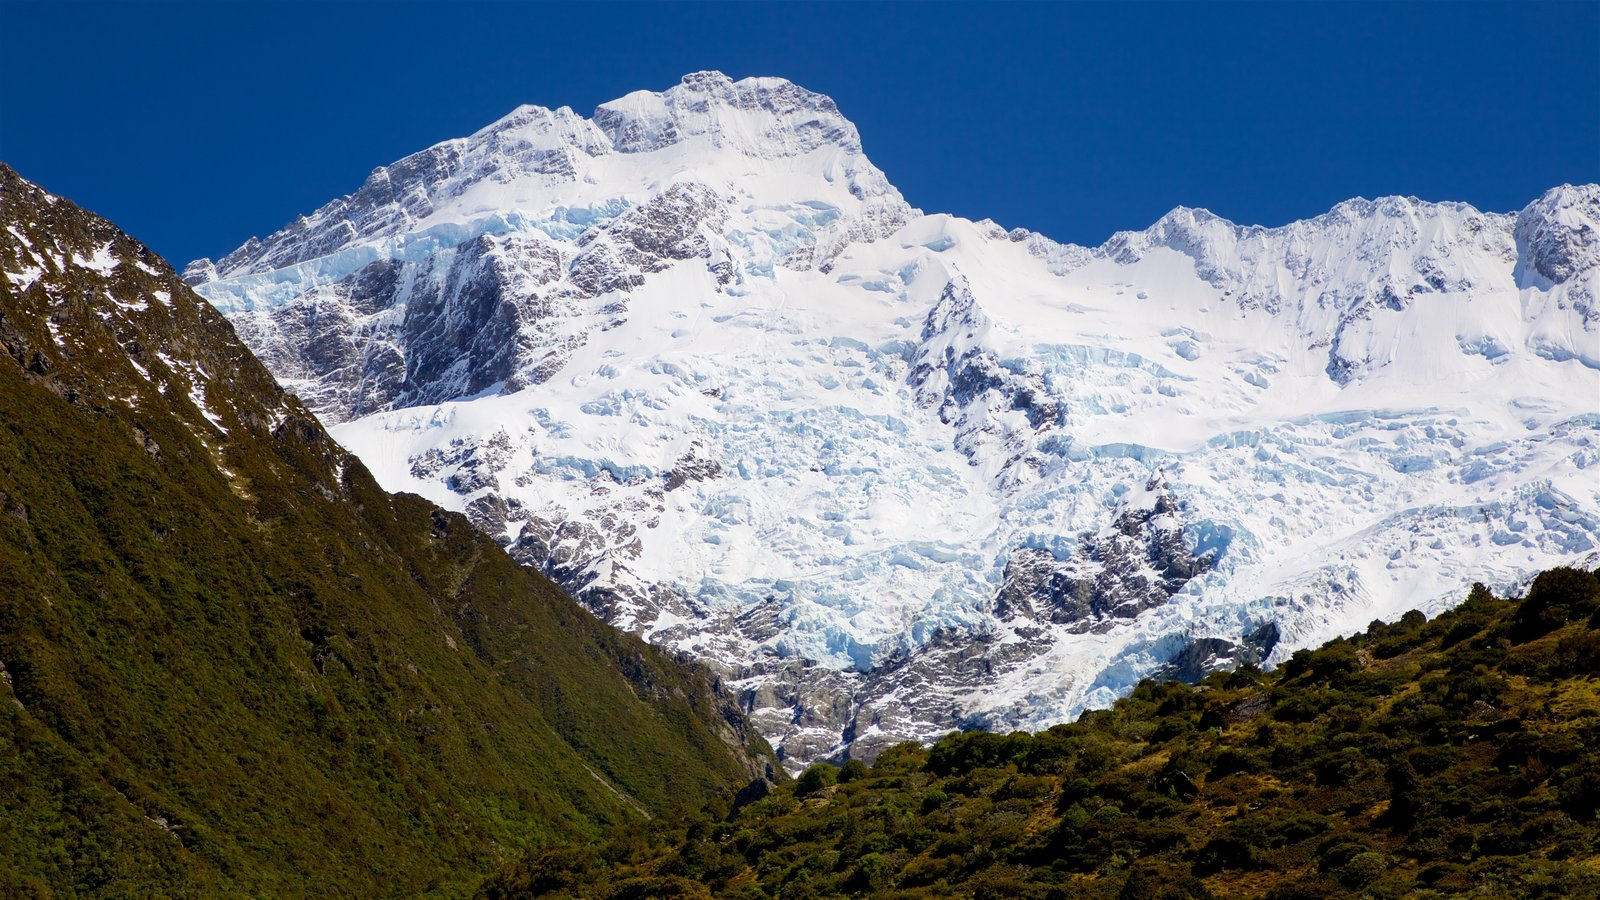 Mount Cook National Park showing mountains, tranquil scenes and snow